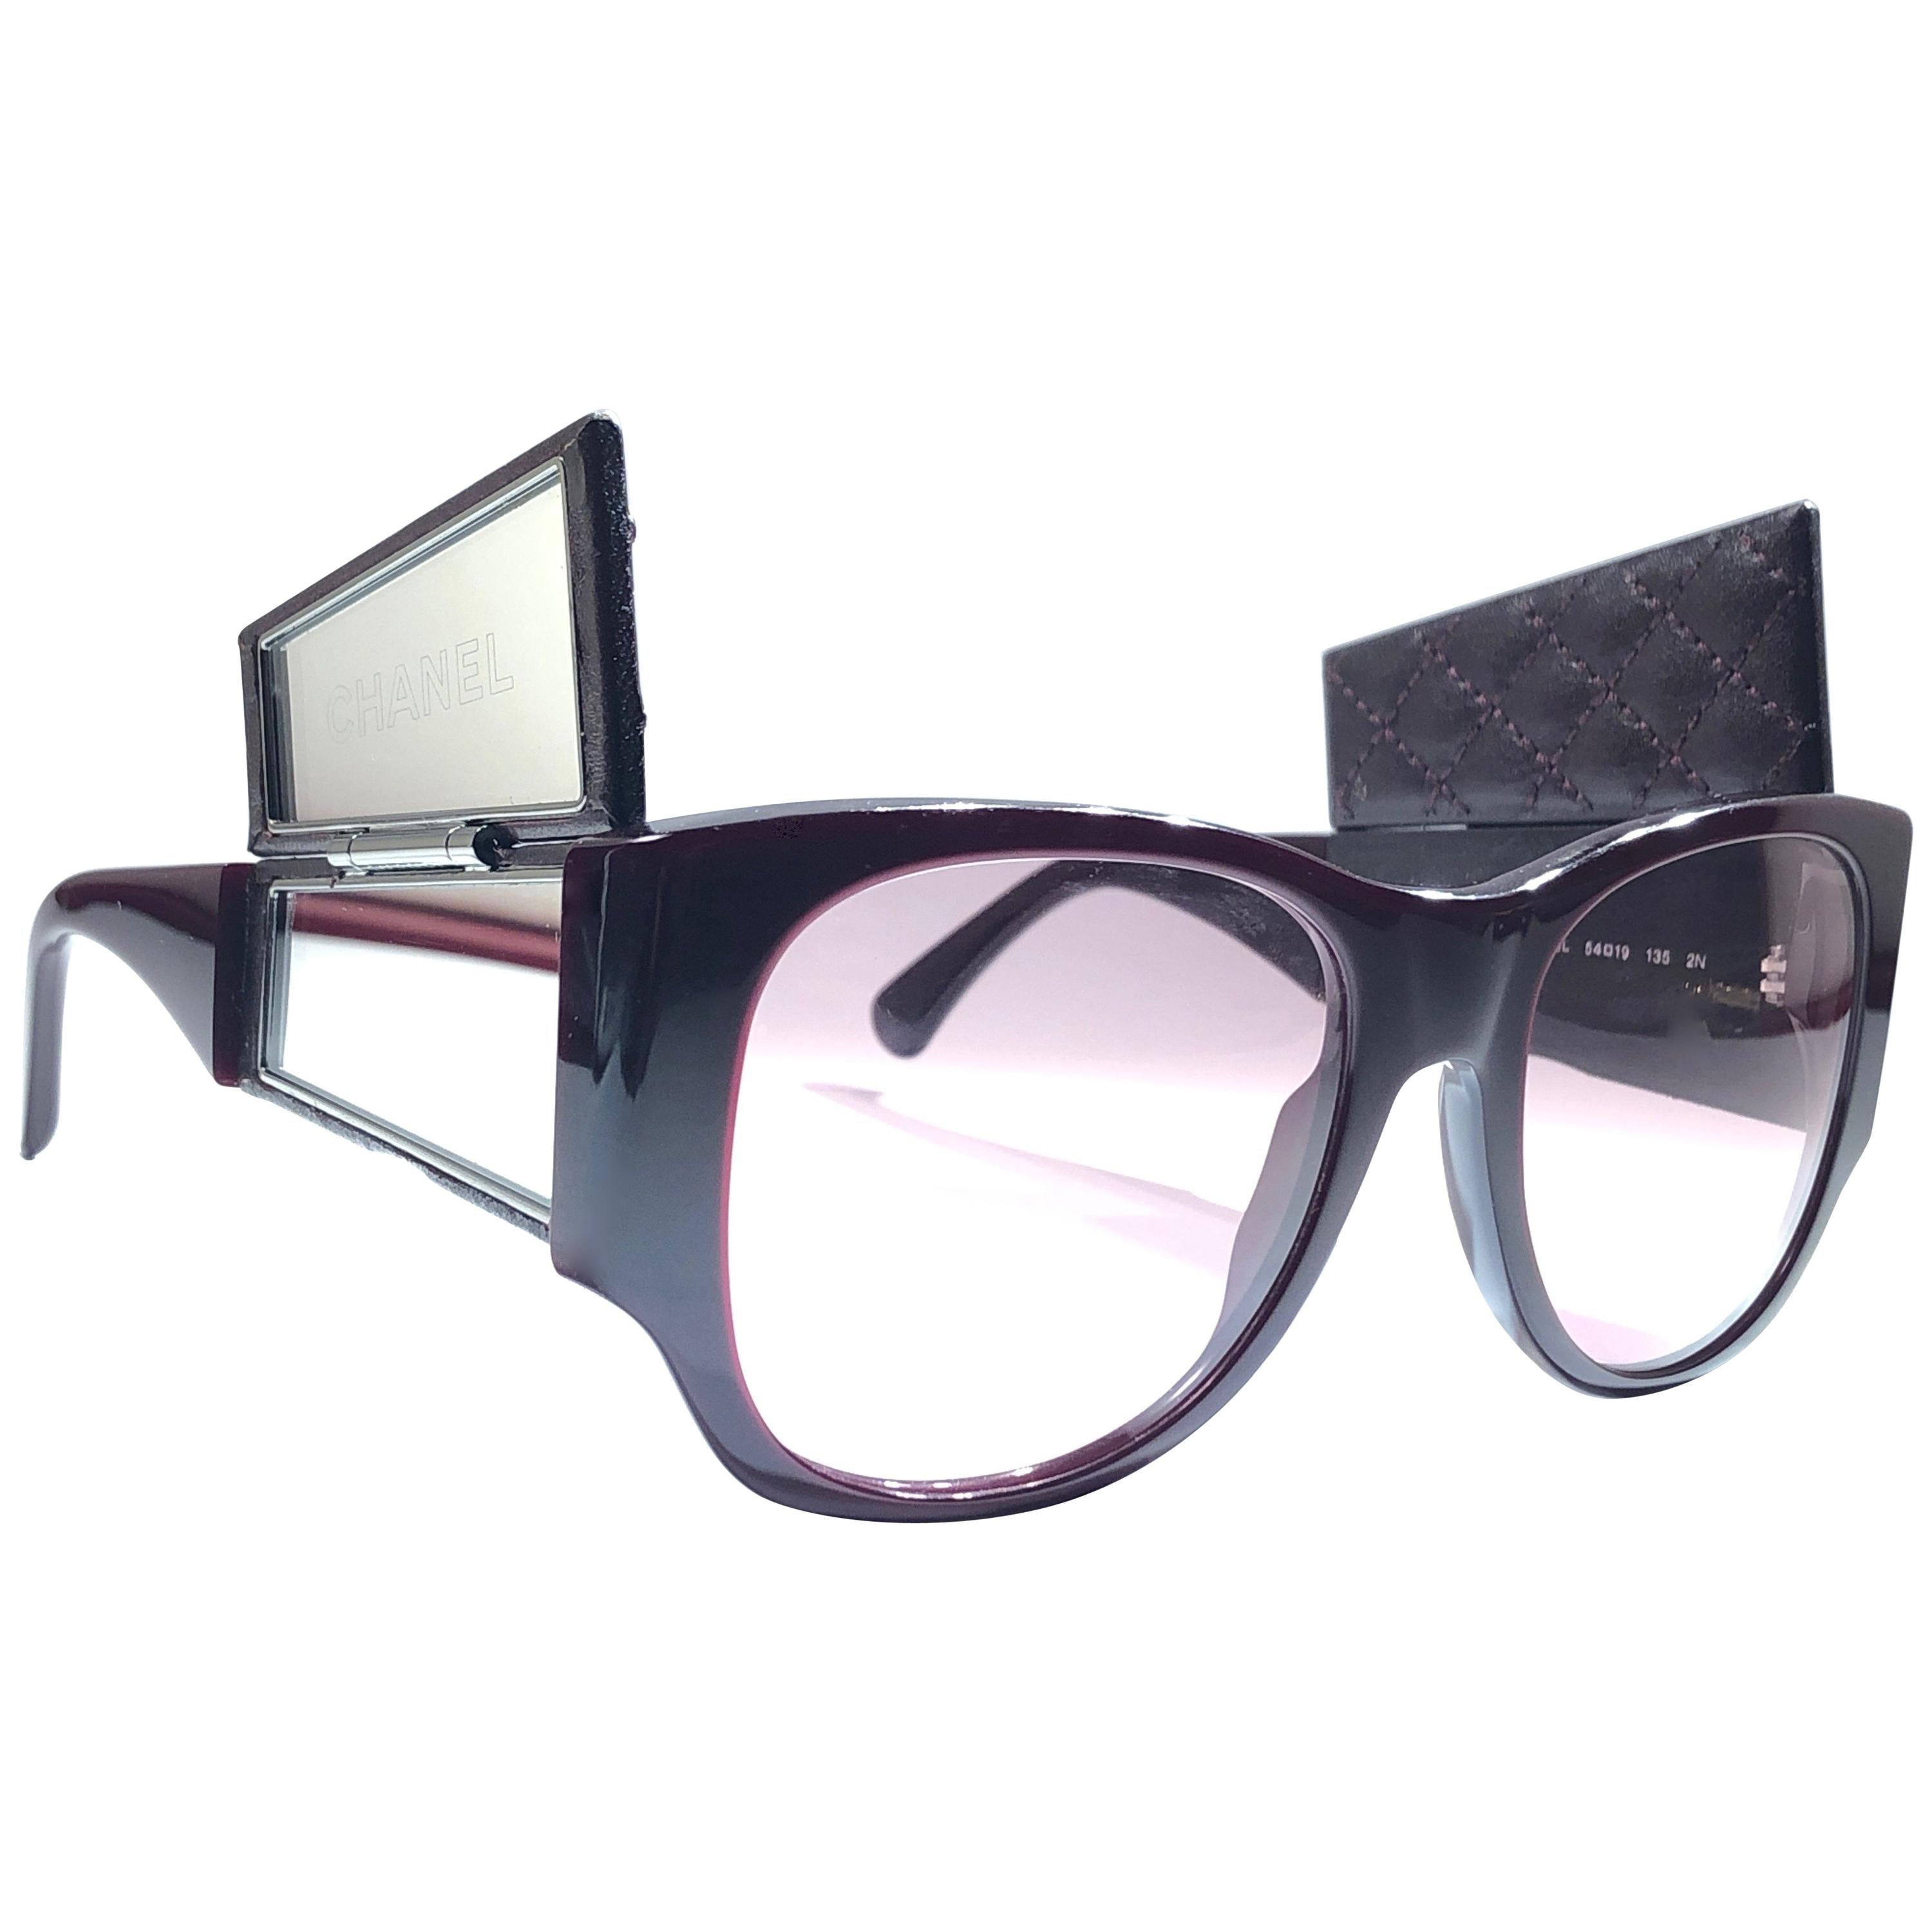 425cfcc8593fd Vintage Chanel Sunglasses - 90 For Sale at 1stdibs